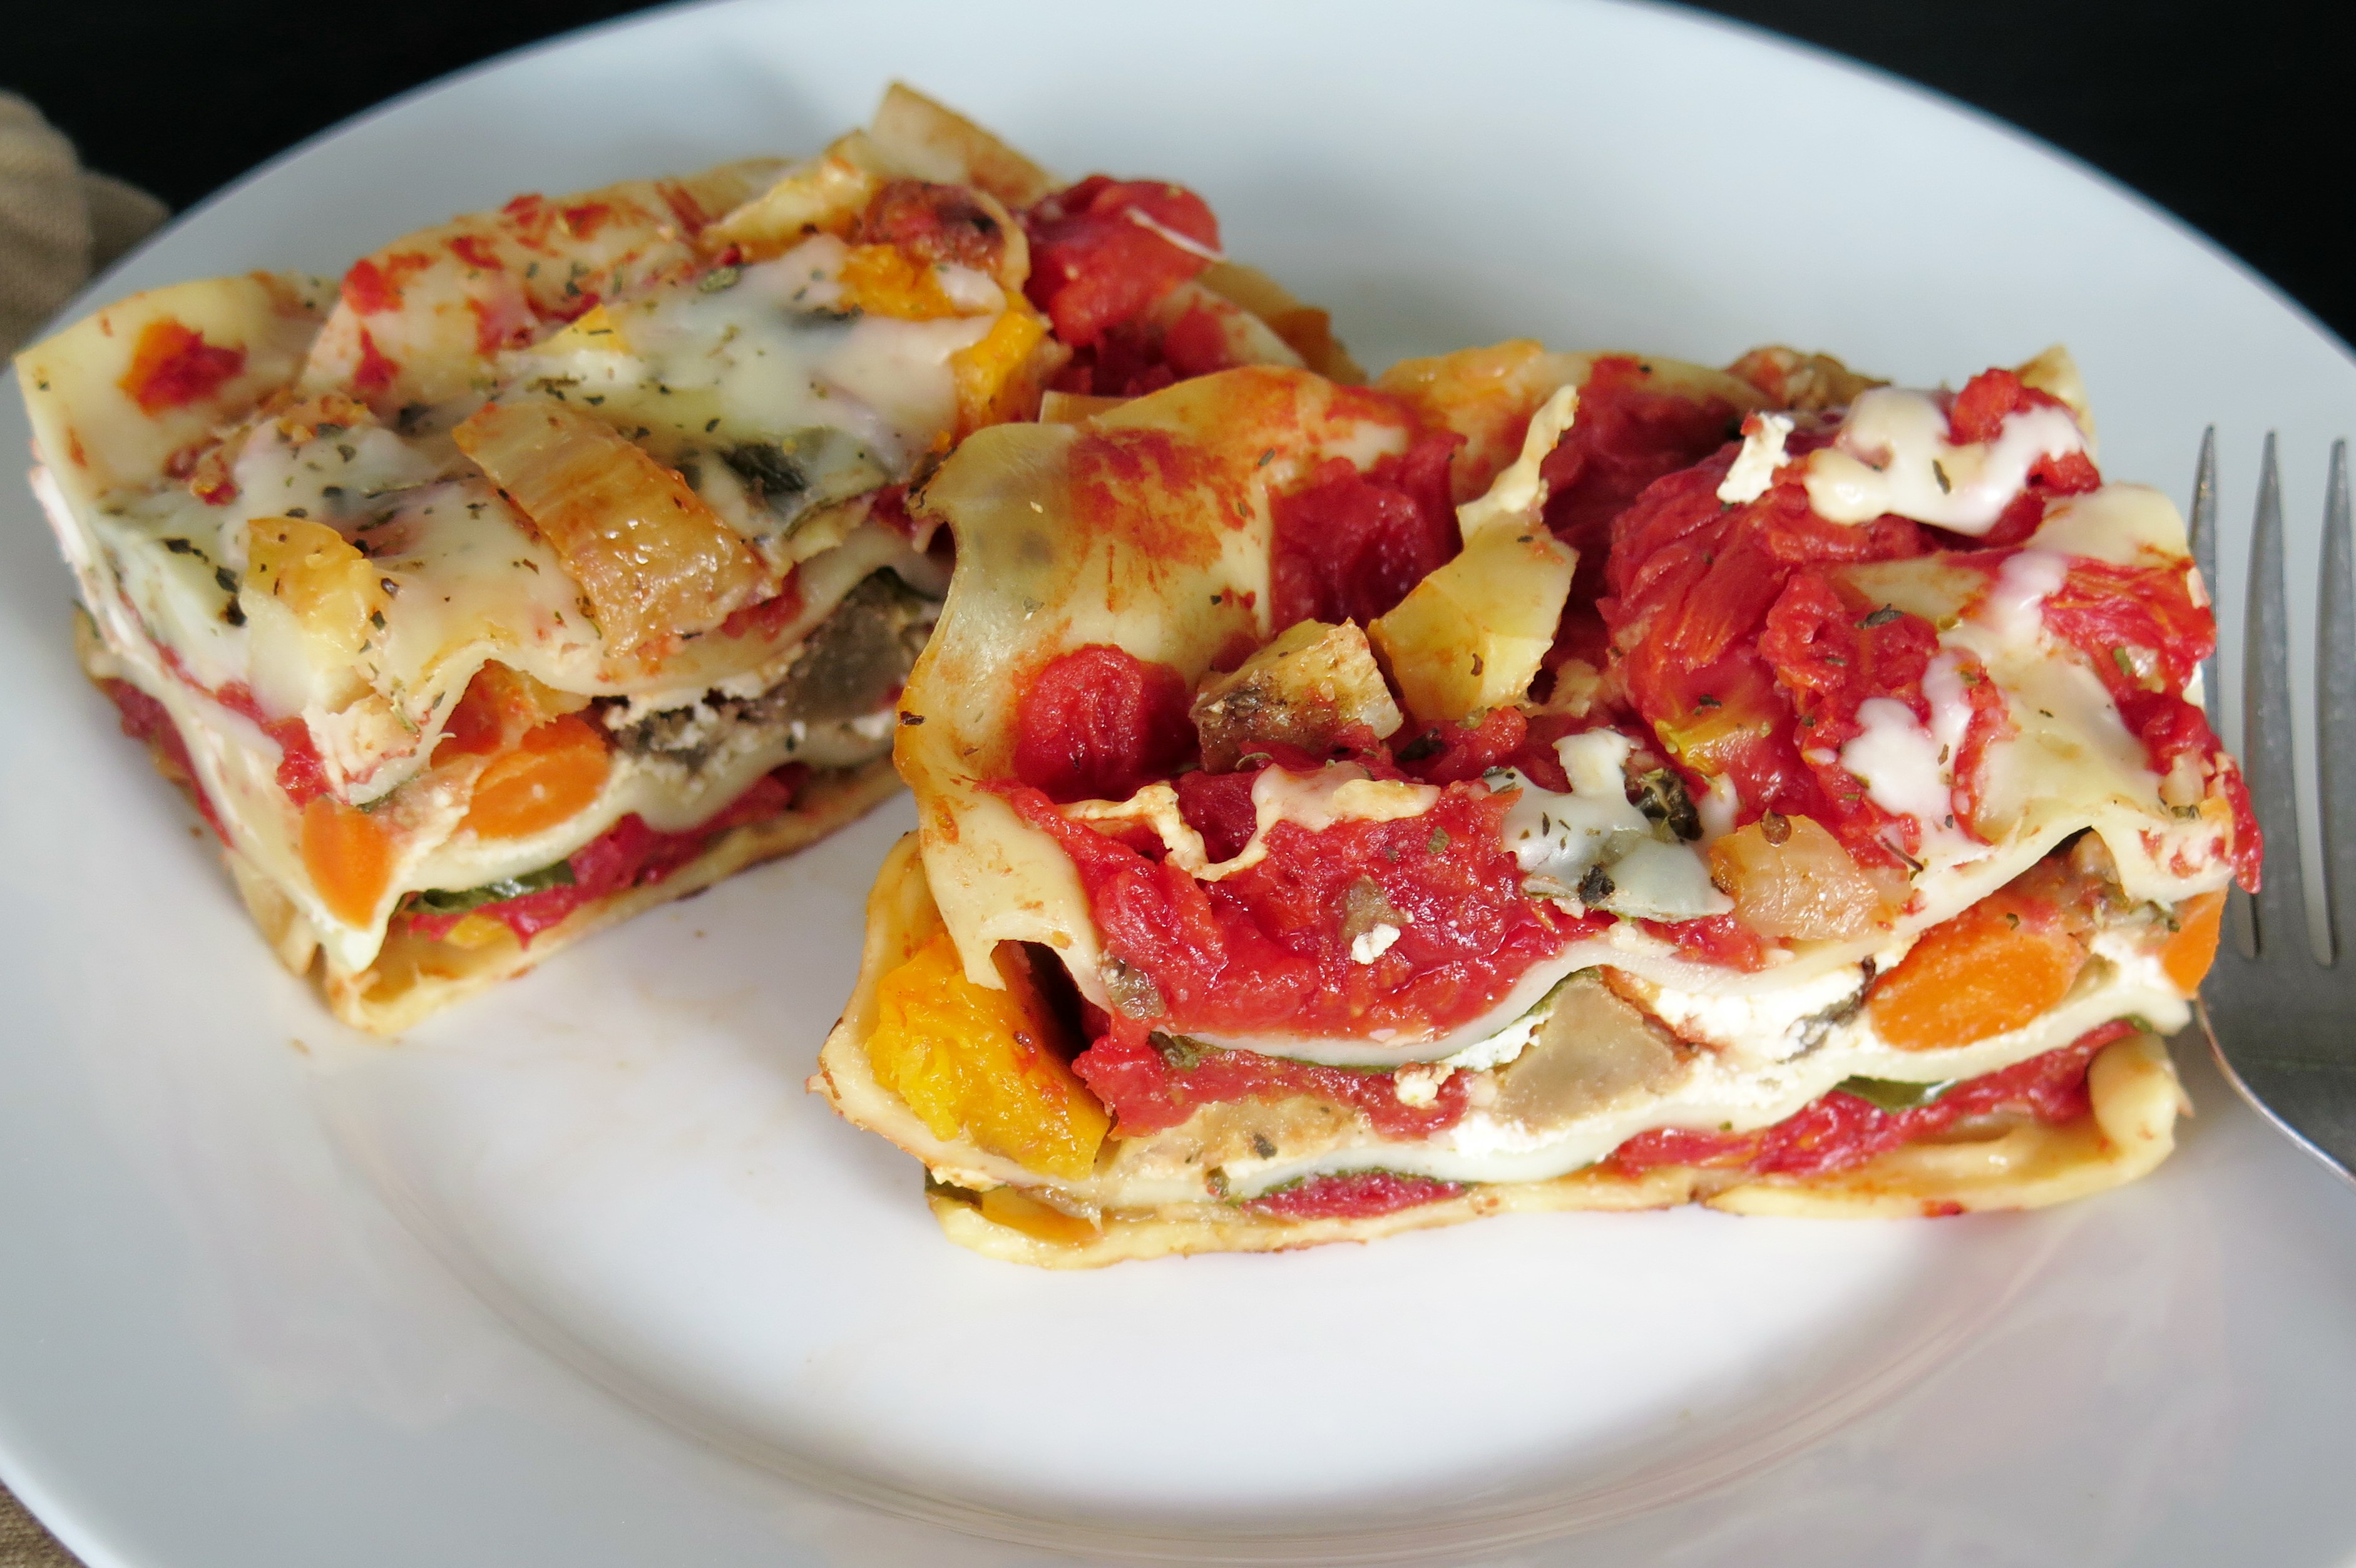 Roasted Vegetable Lasagna #RecipeRedux - Cindy's Recipes and ...